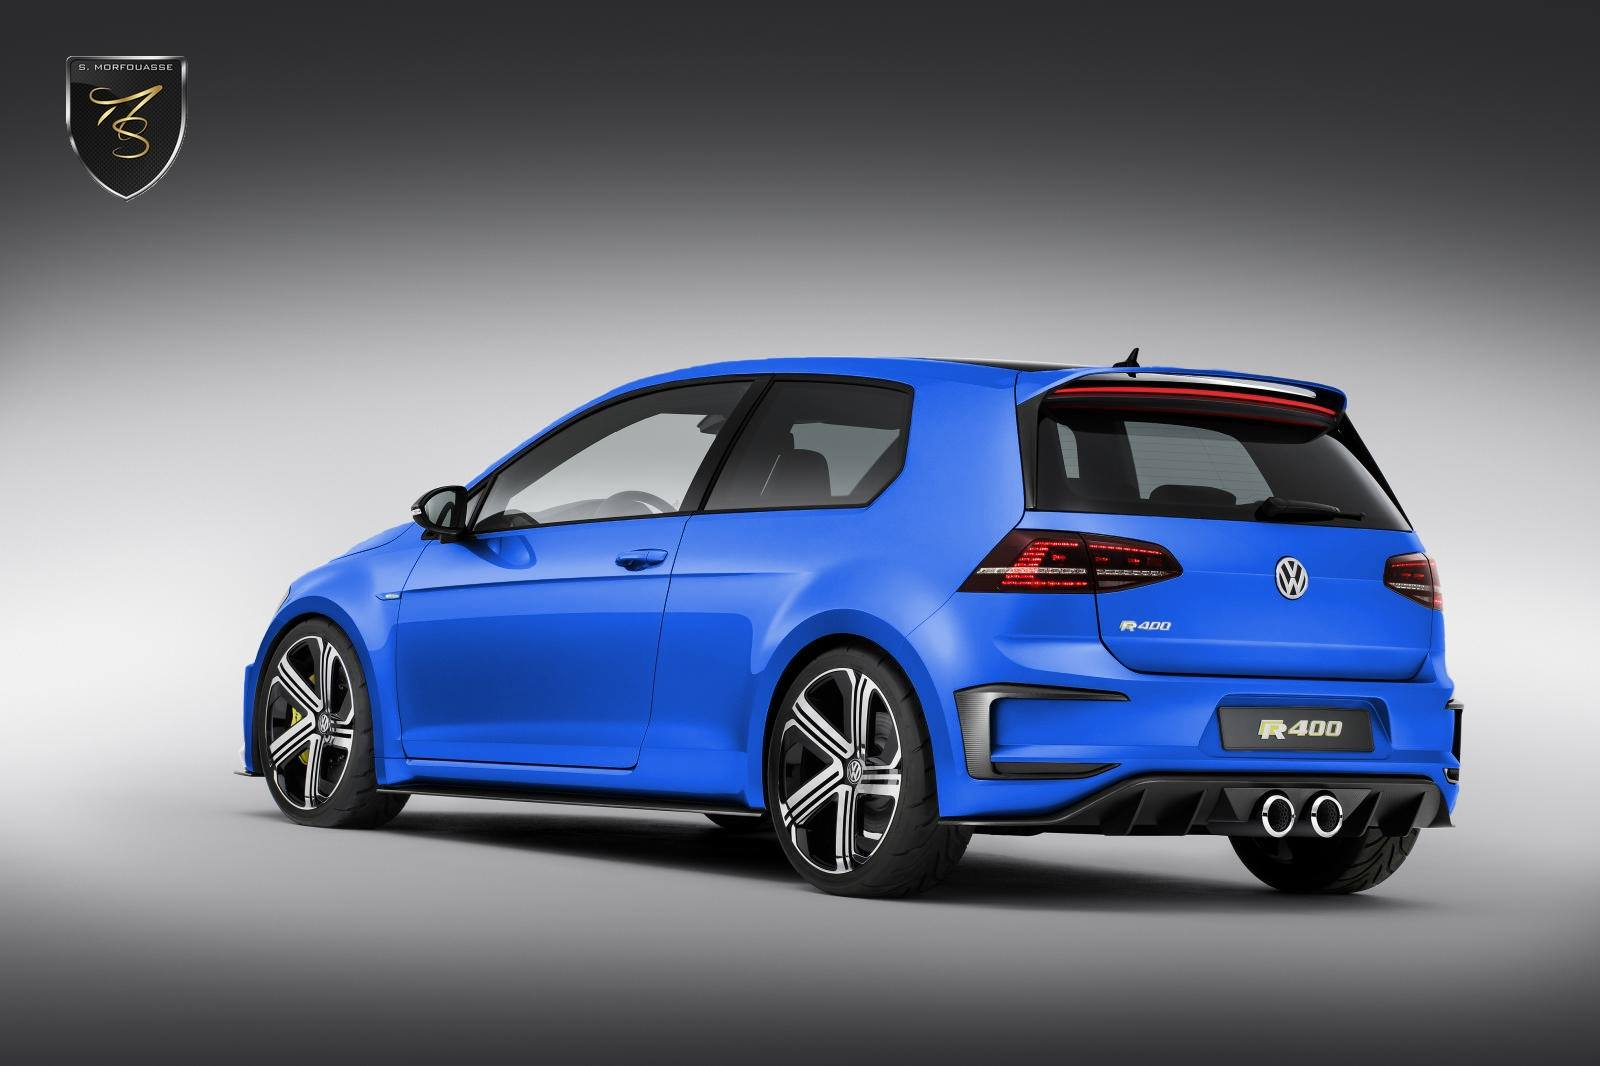 volkswagen golf r400 de nouvelles images et le tarif d voil. Black Bedroom Furniture Sets. Home Design Ideas